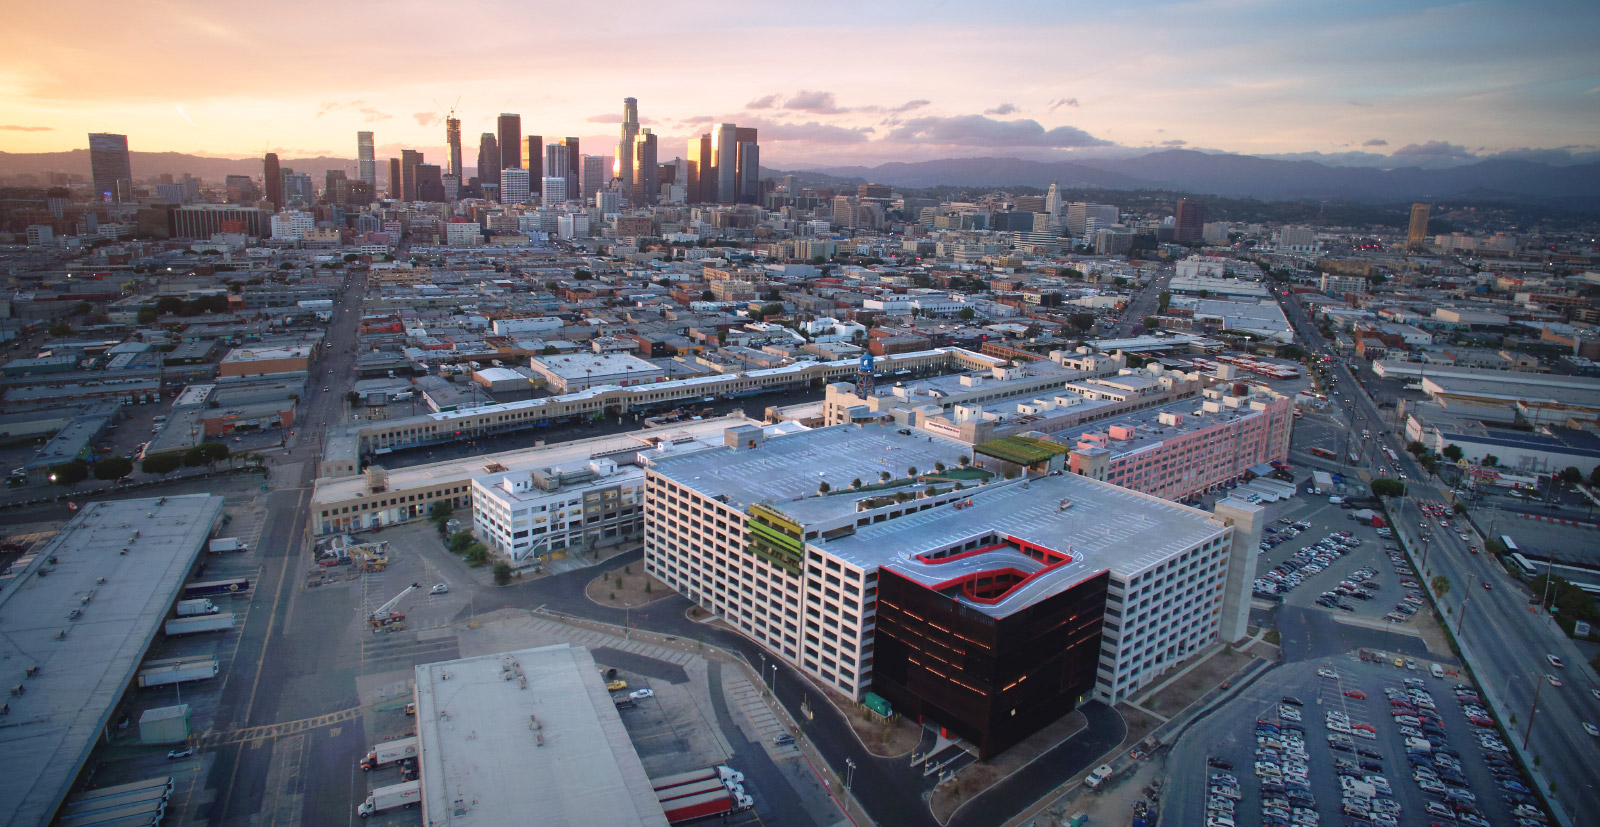 Aerial View of Row DTLA